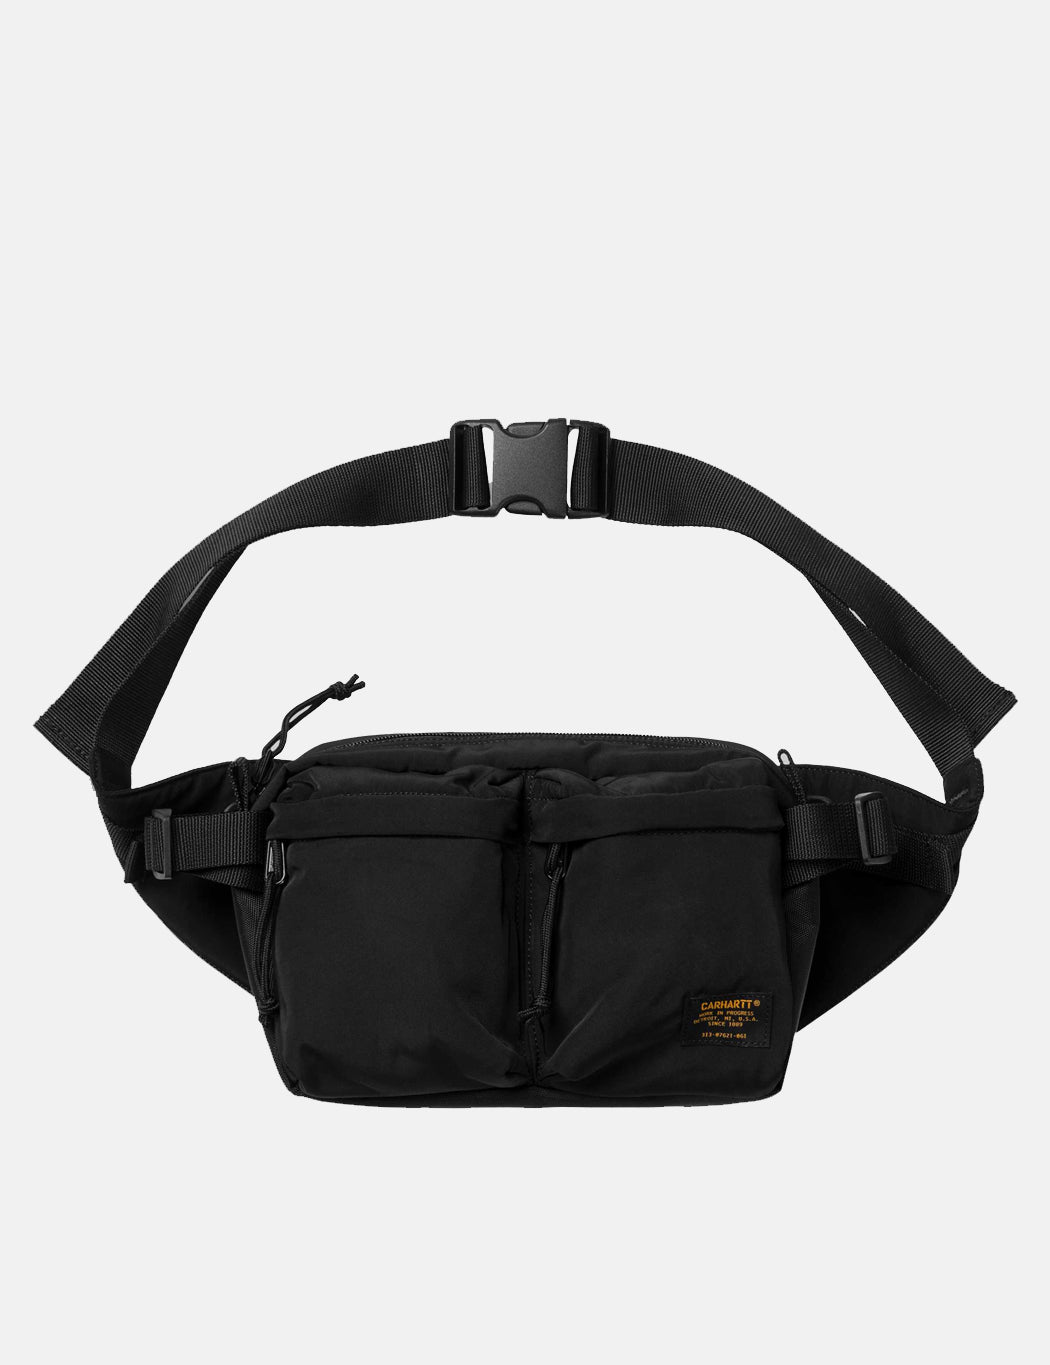 Carhartt-WIP Military Hip Bag - Black